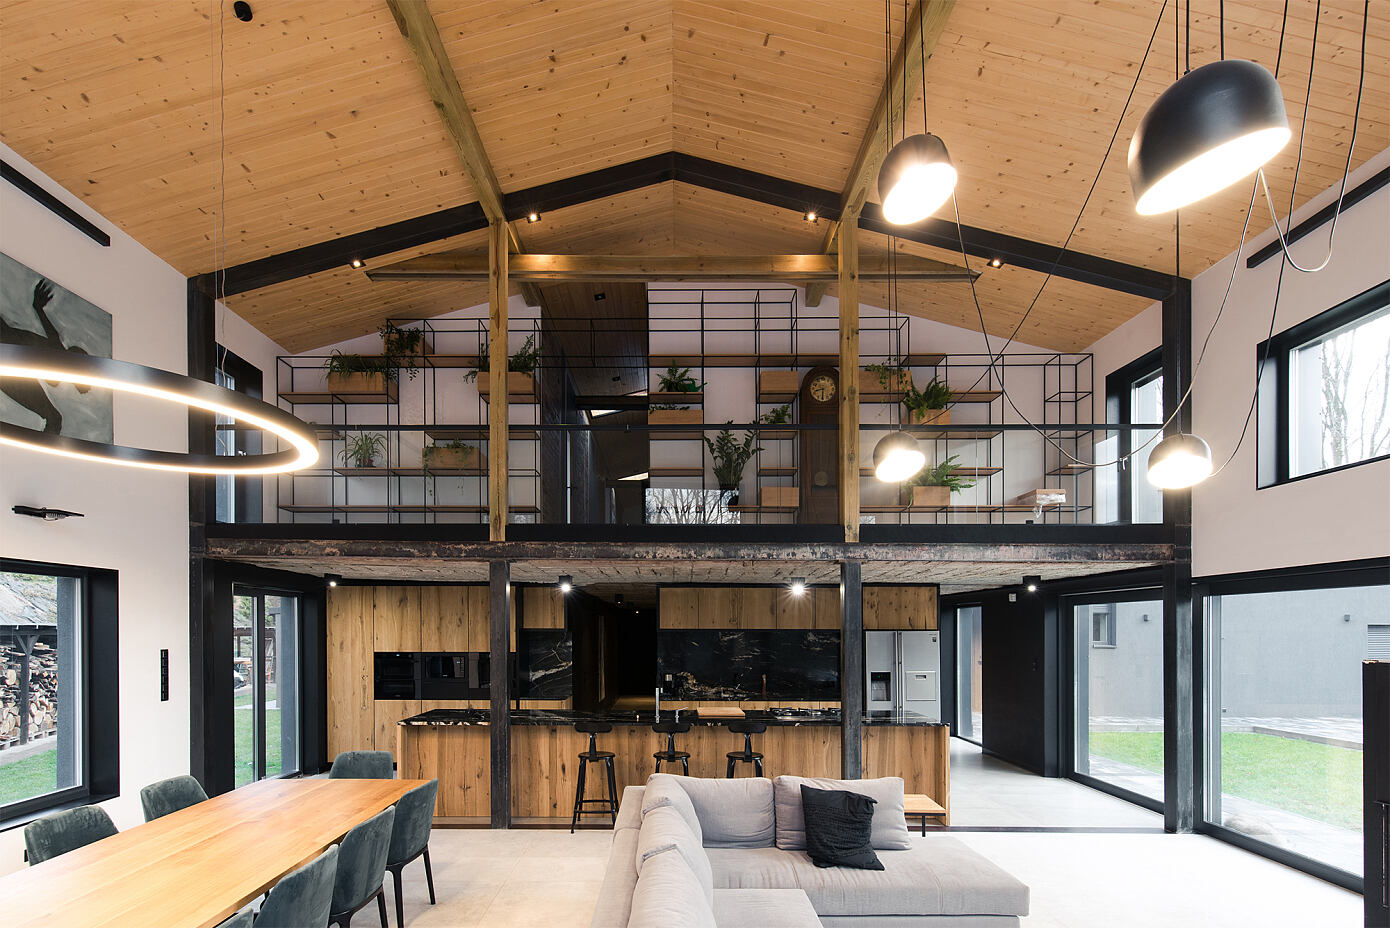 Silesian House by Mode:lina